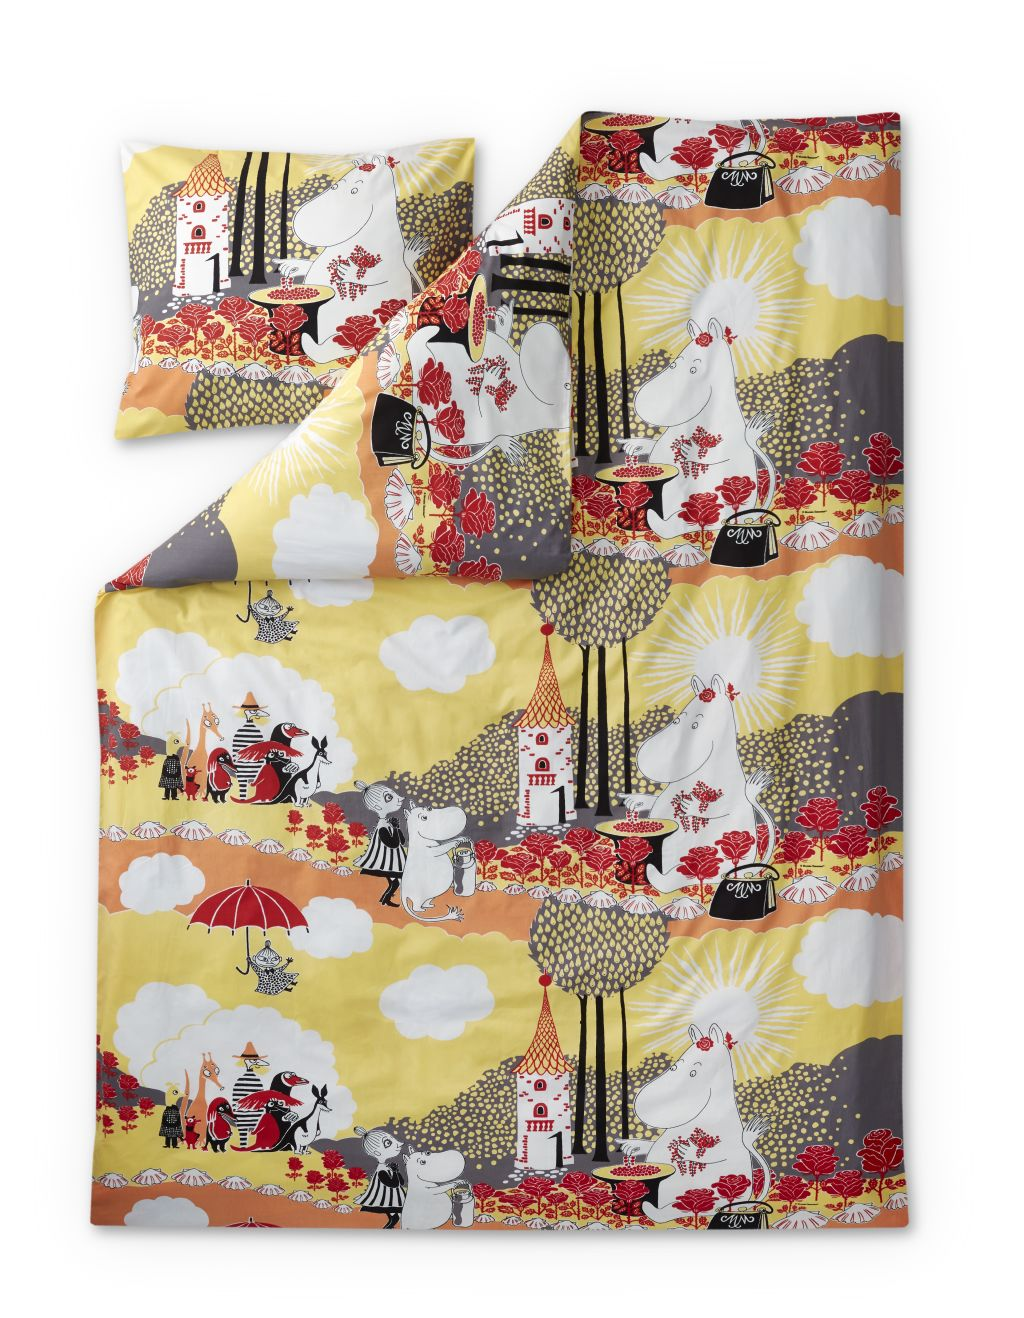 Finlayson DUVET COVER +  PILLOWCASE ROSE MOOMIN YELLOW 120X160+40X60